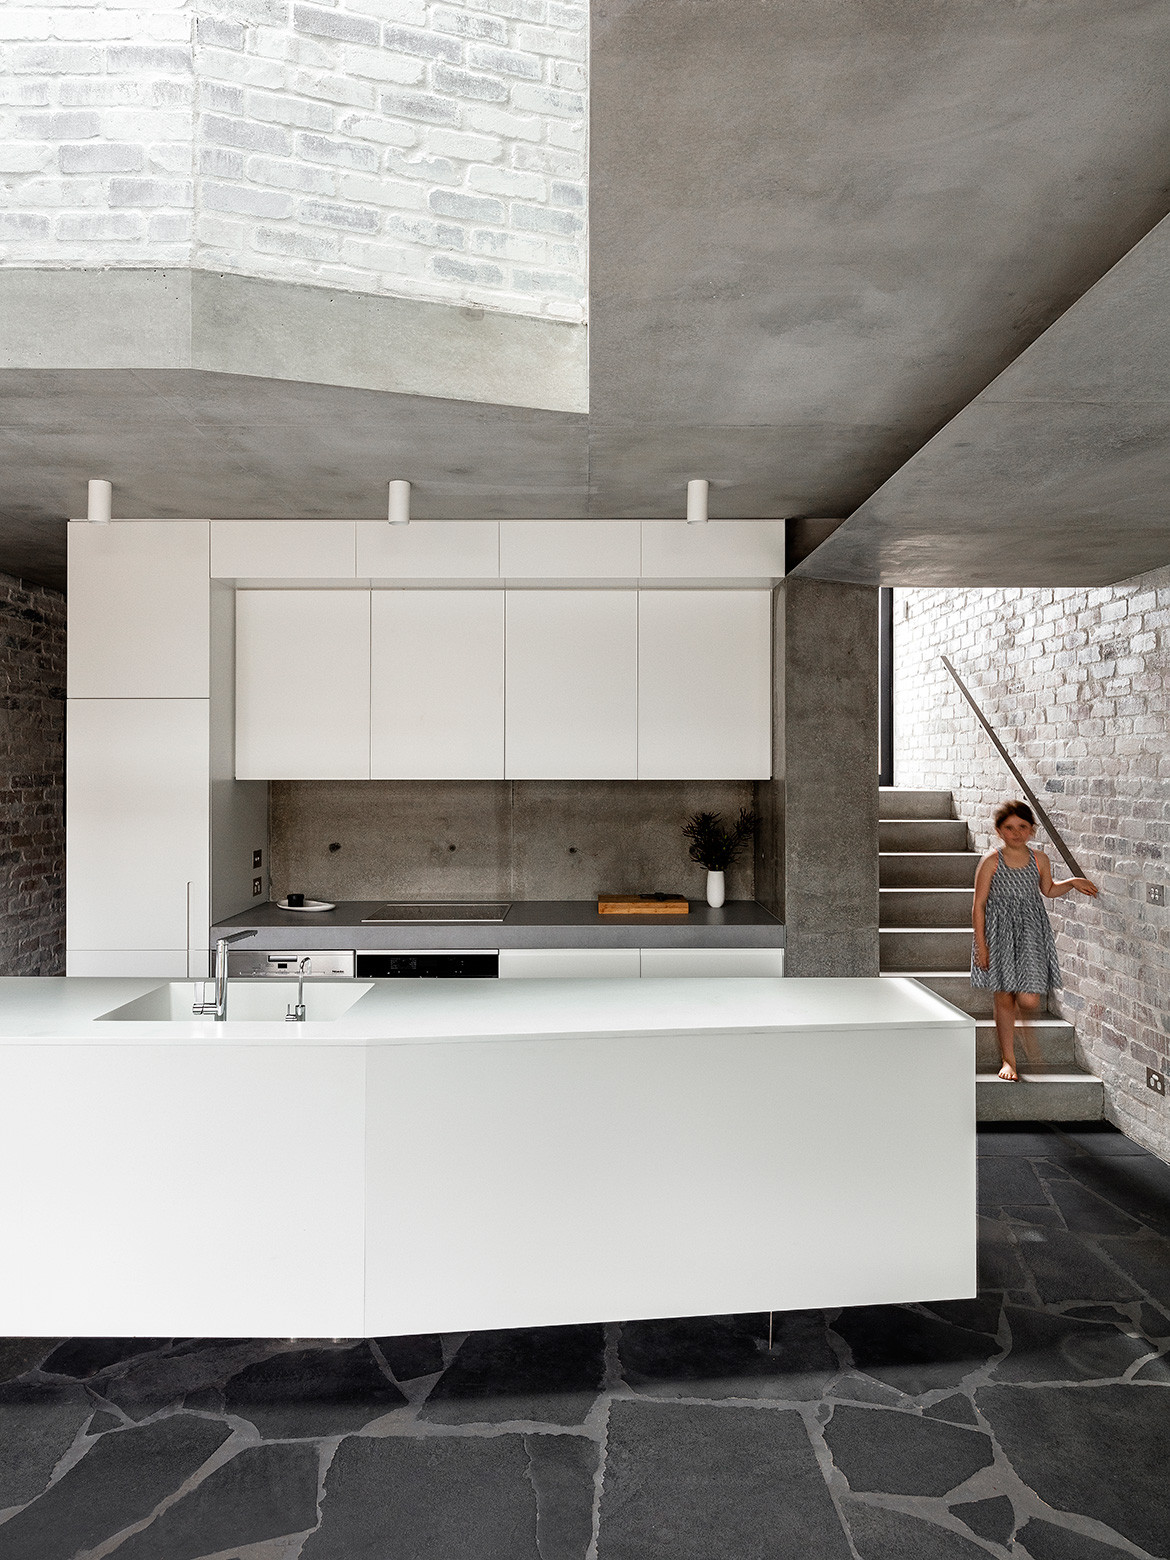 Rock-like materials and a sense of monumentality connect a new concrete pavilion with a longstanding sandstone cottage in Balmain, Sydney.